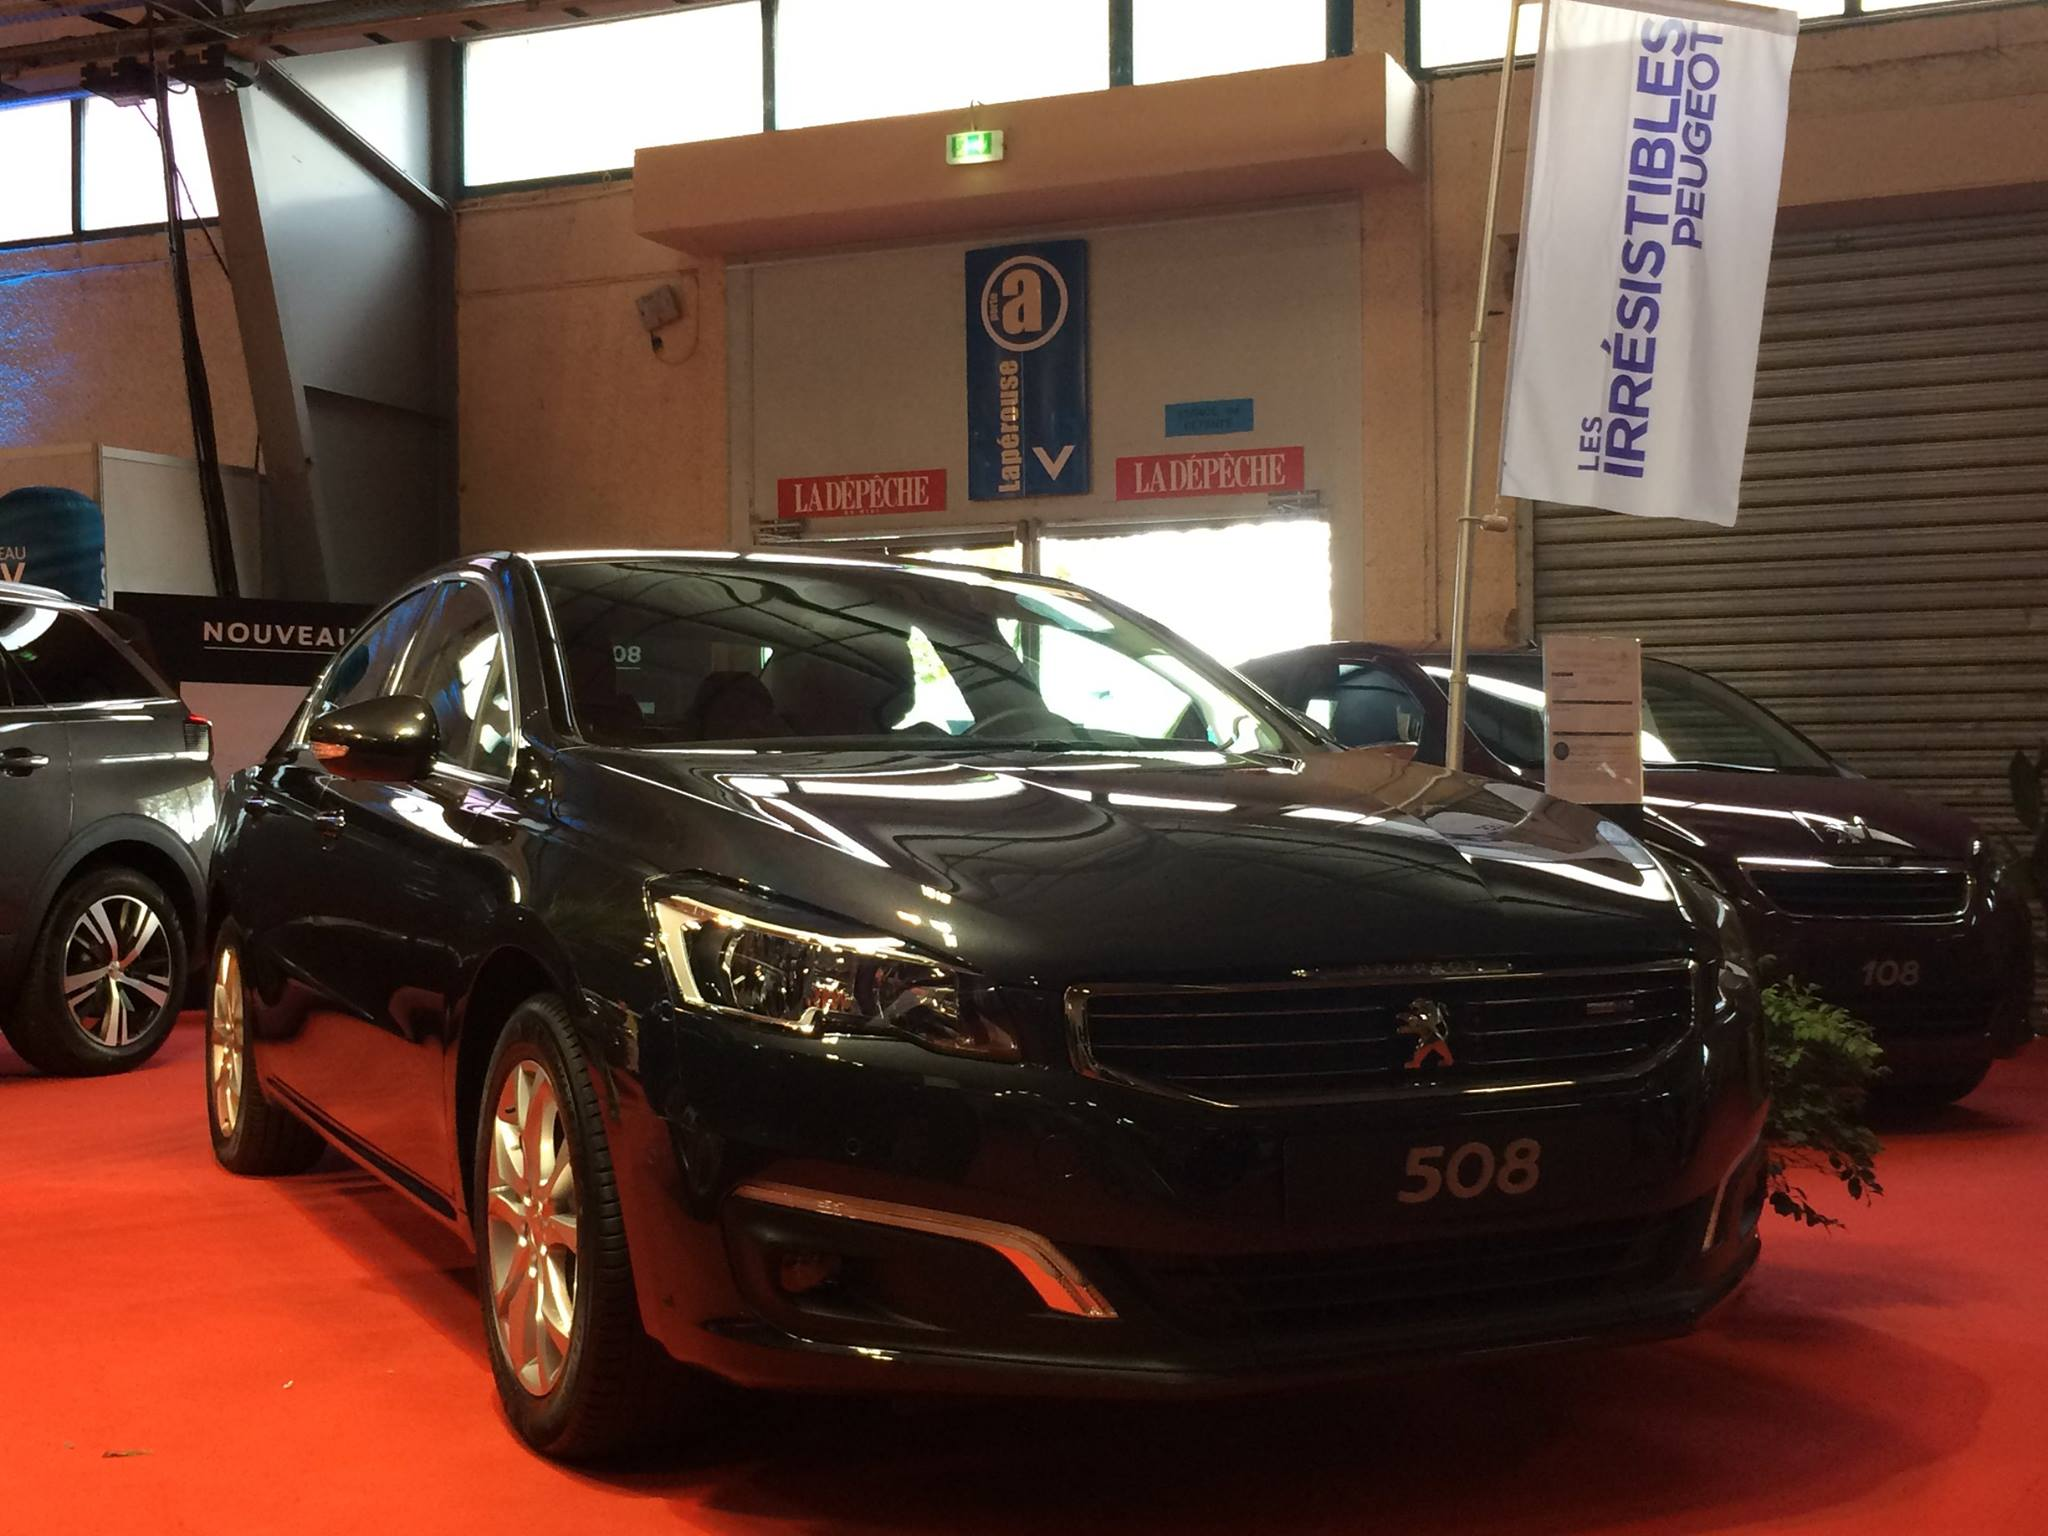 Salon De Thé Albi Salon Auto Albi 2017 Blog Maurel Auto